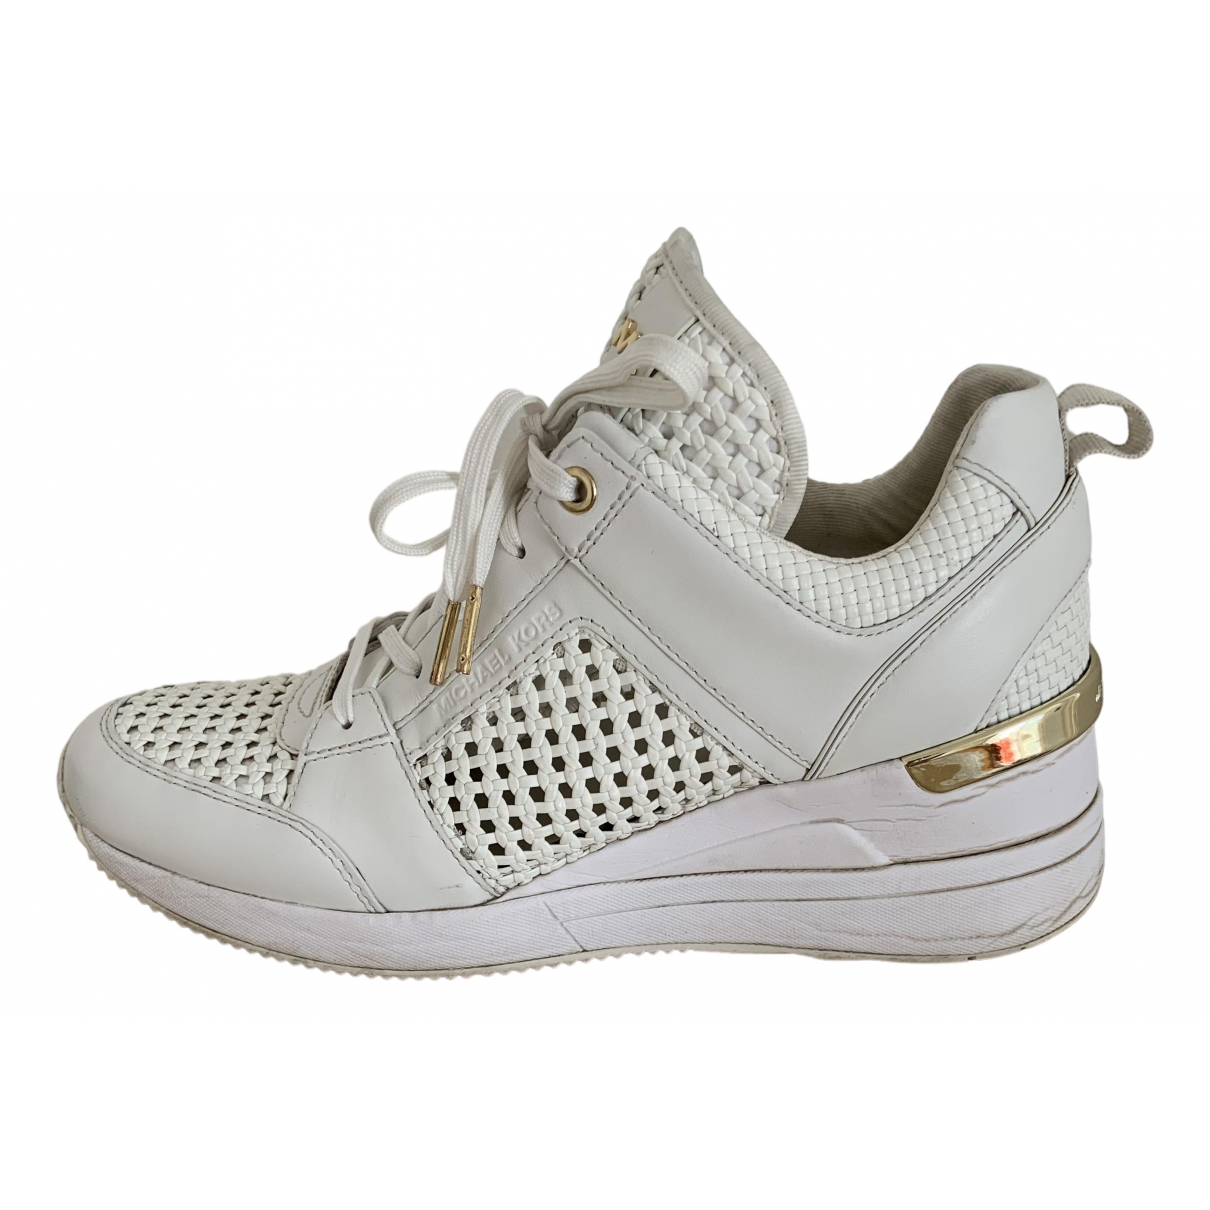 Michael Kors \N White Leather Trainers for Women 9 US